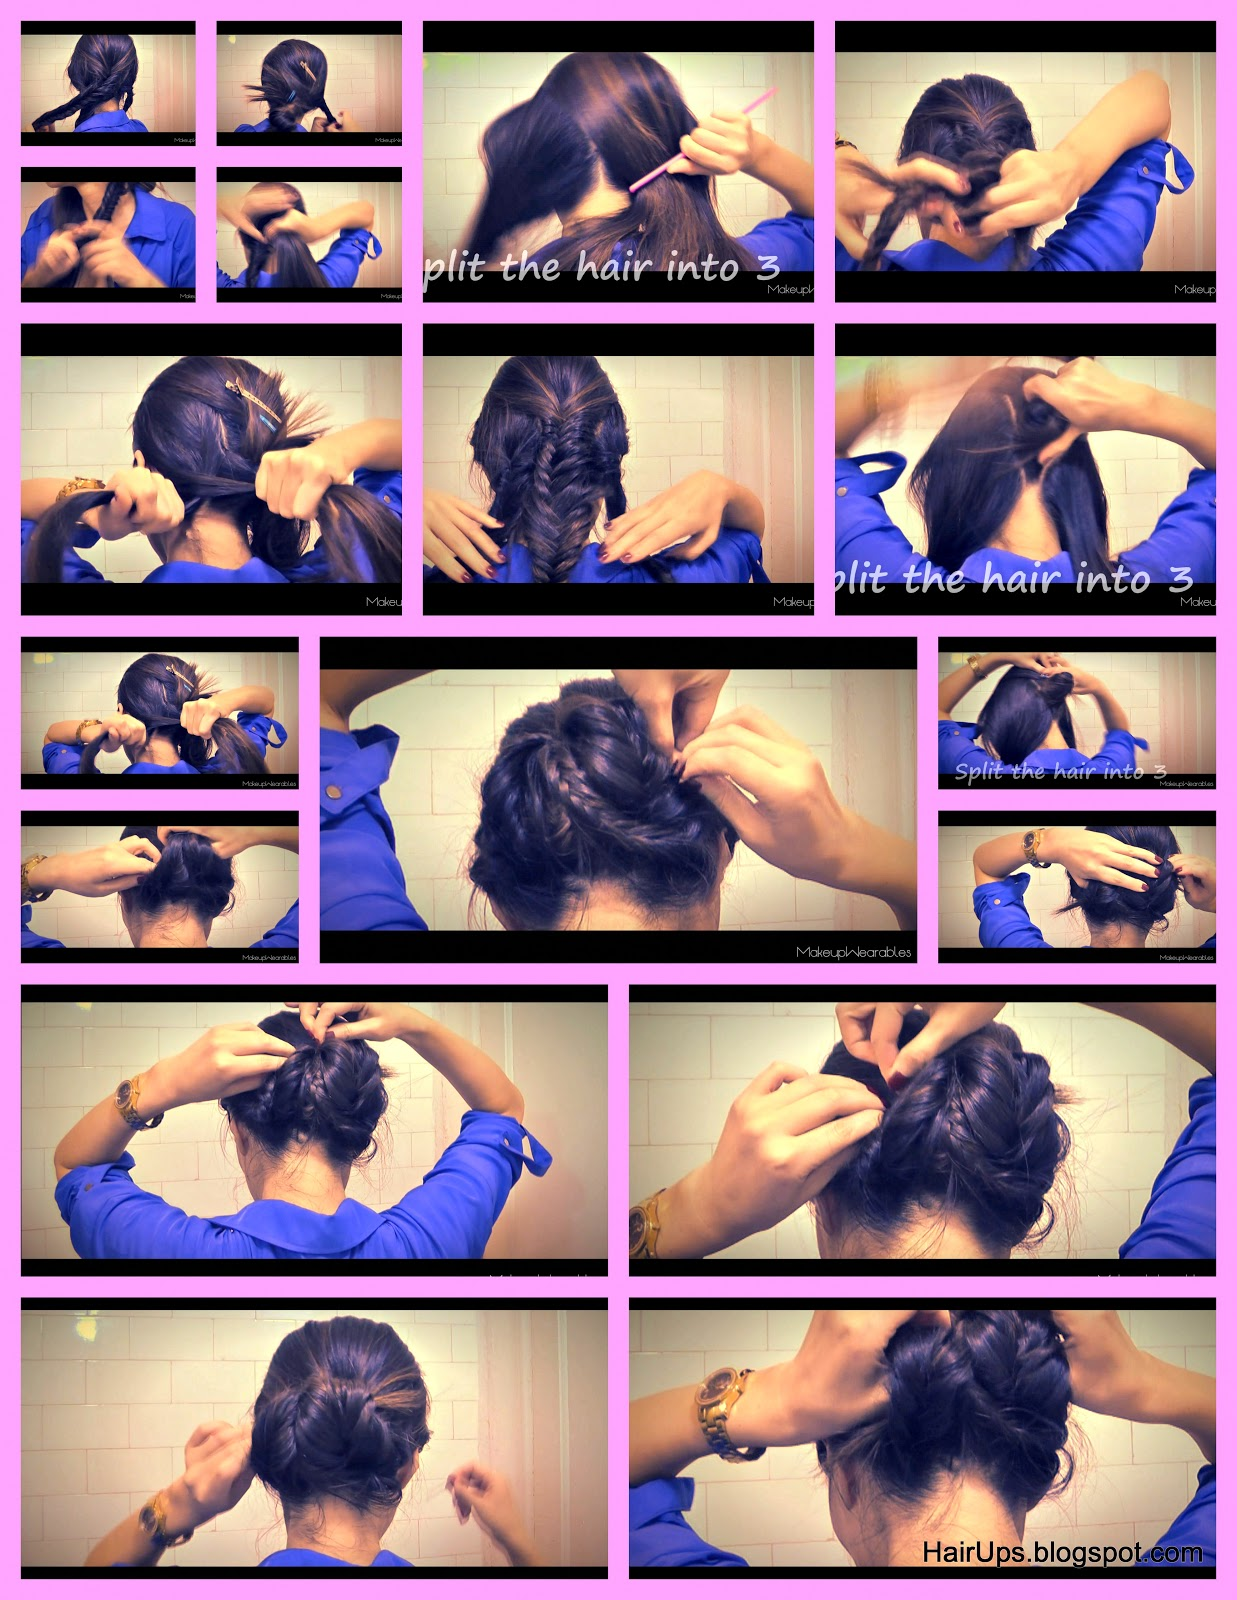 Hair Tutorial: wedding hairstyles, formal occasion, homecoming, prom